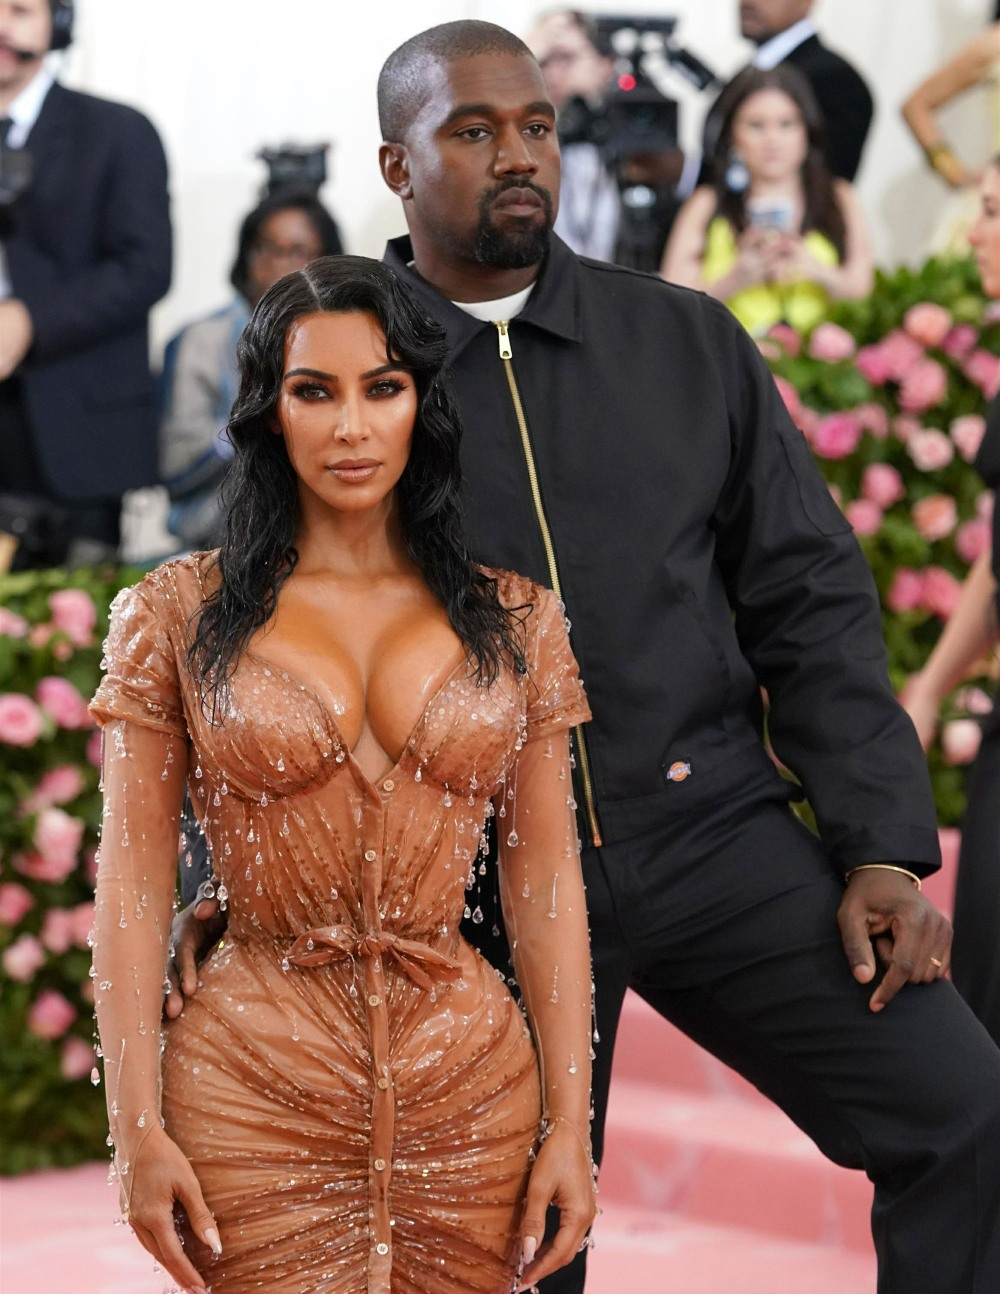 Kim Kardashian West and Kanye West arrive at the 2019 Met Gala in New York